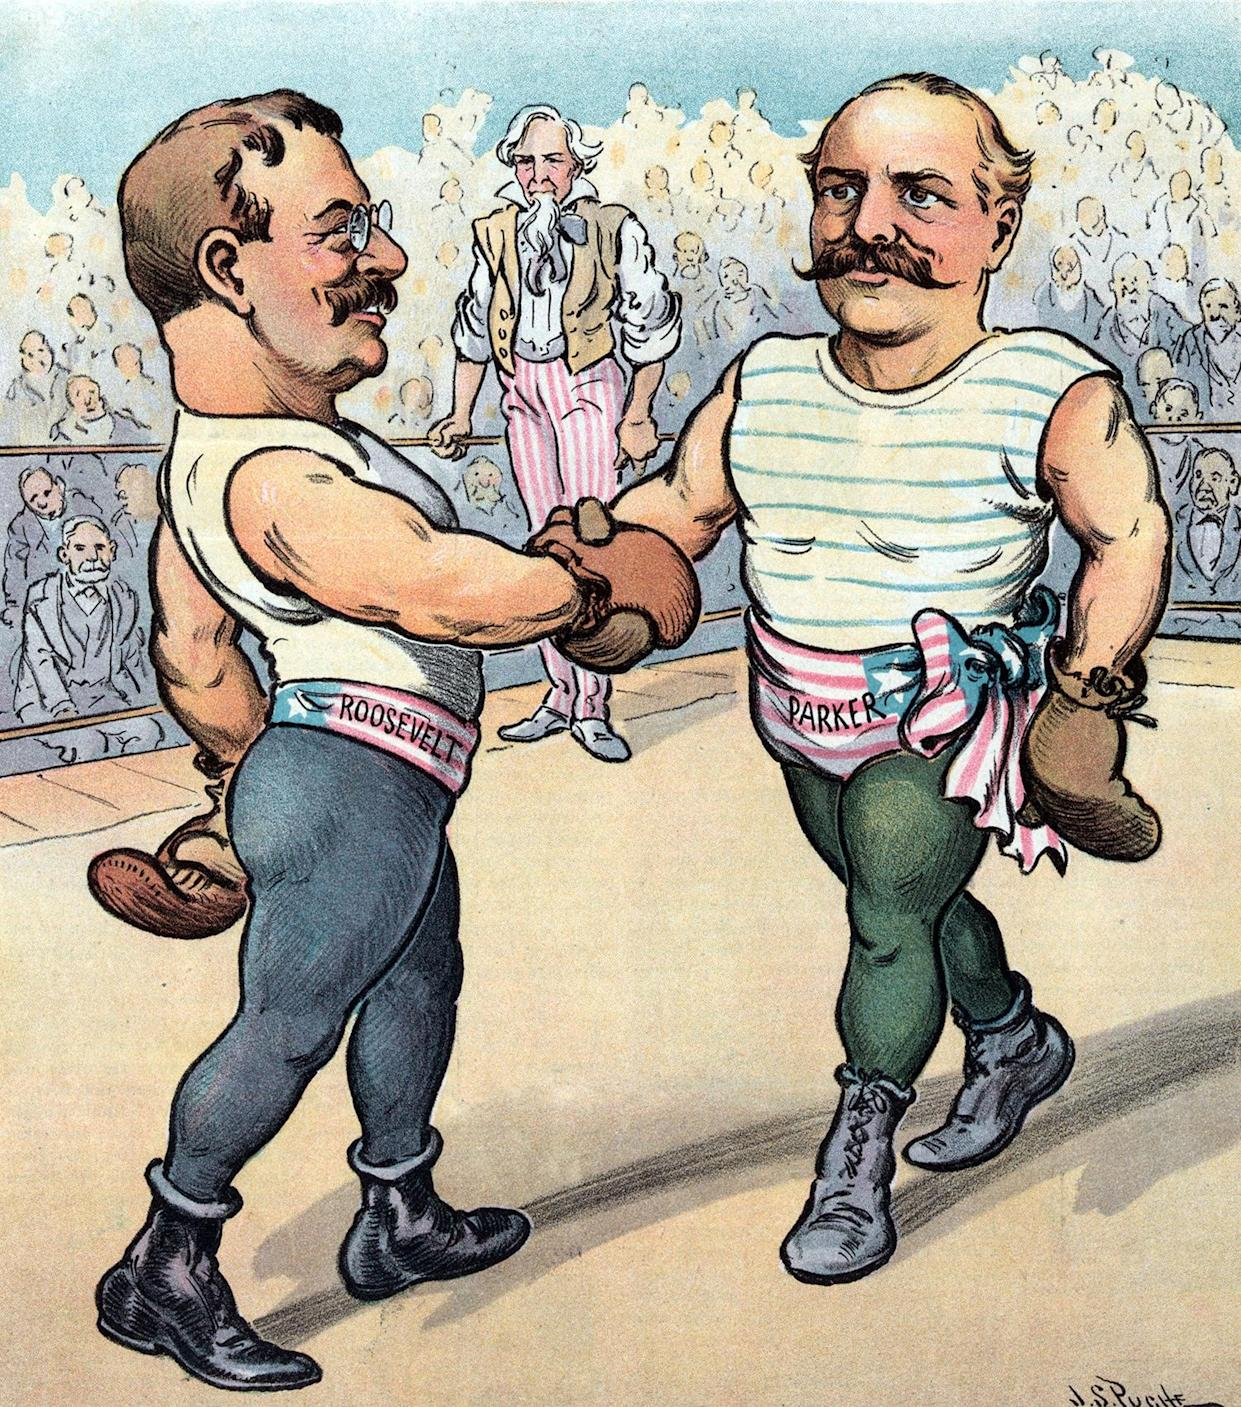 President Theodore Roosevelt and Alton B. Parker depicted as boxers in a ring, shaking hands before the start of the match. (Photo: Universal History Archive/UIG via Getty Images)